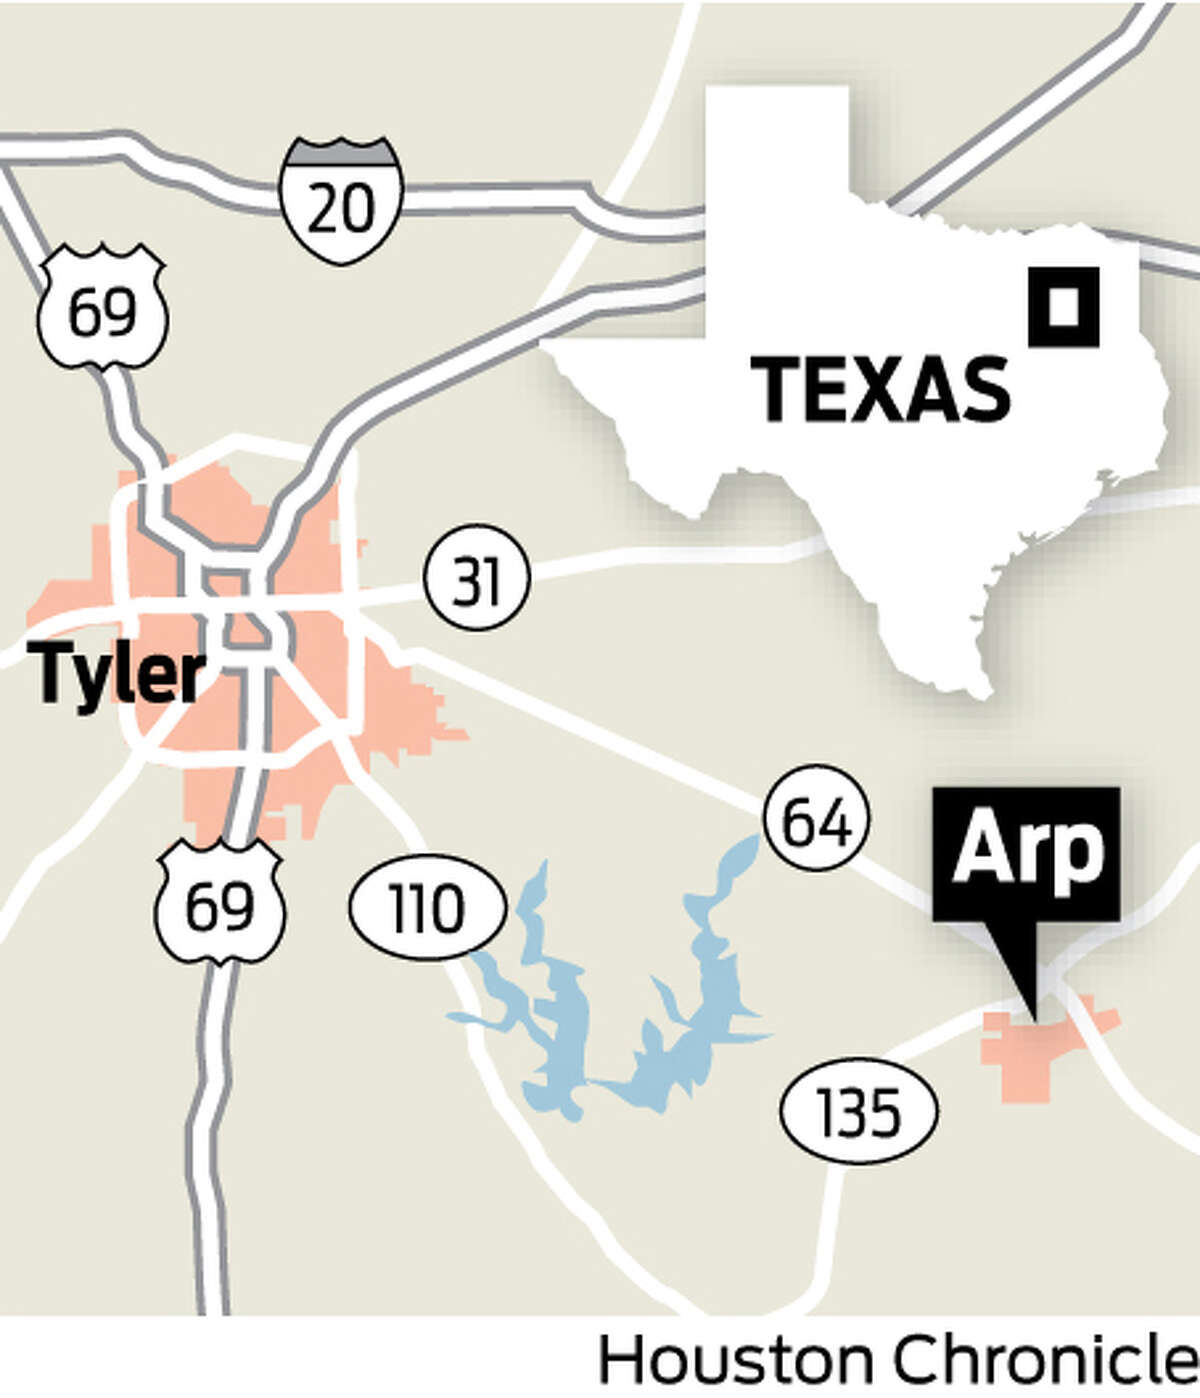 Spotter for Arp, Texas, birthplace of Guy V. Lewis, former UH basketball coach